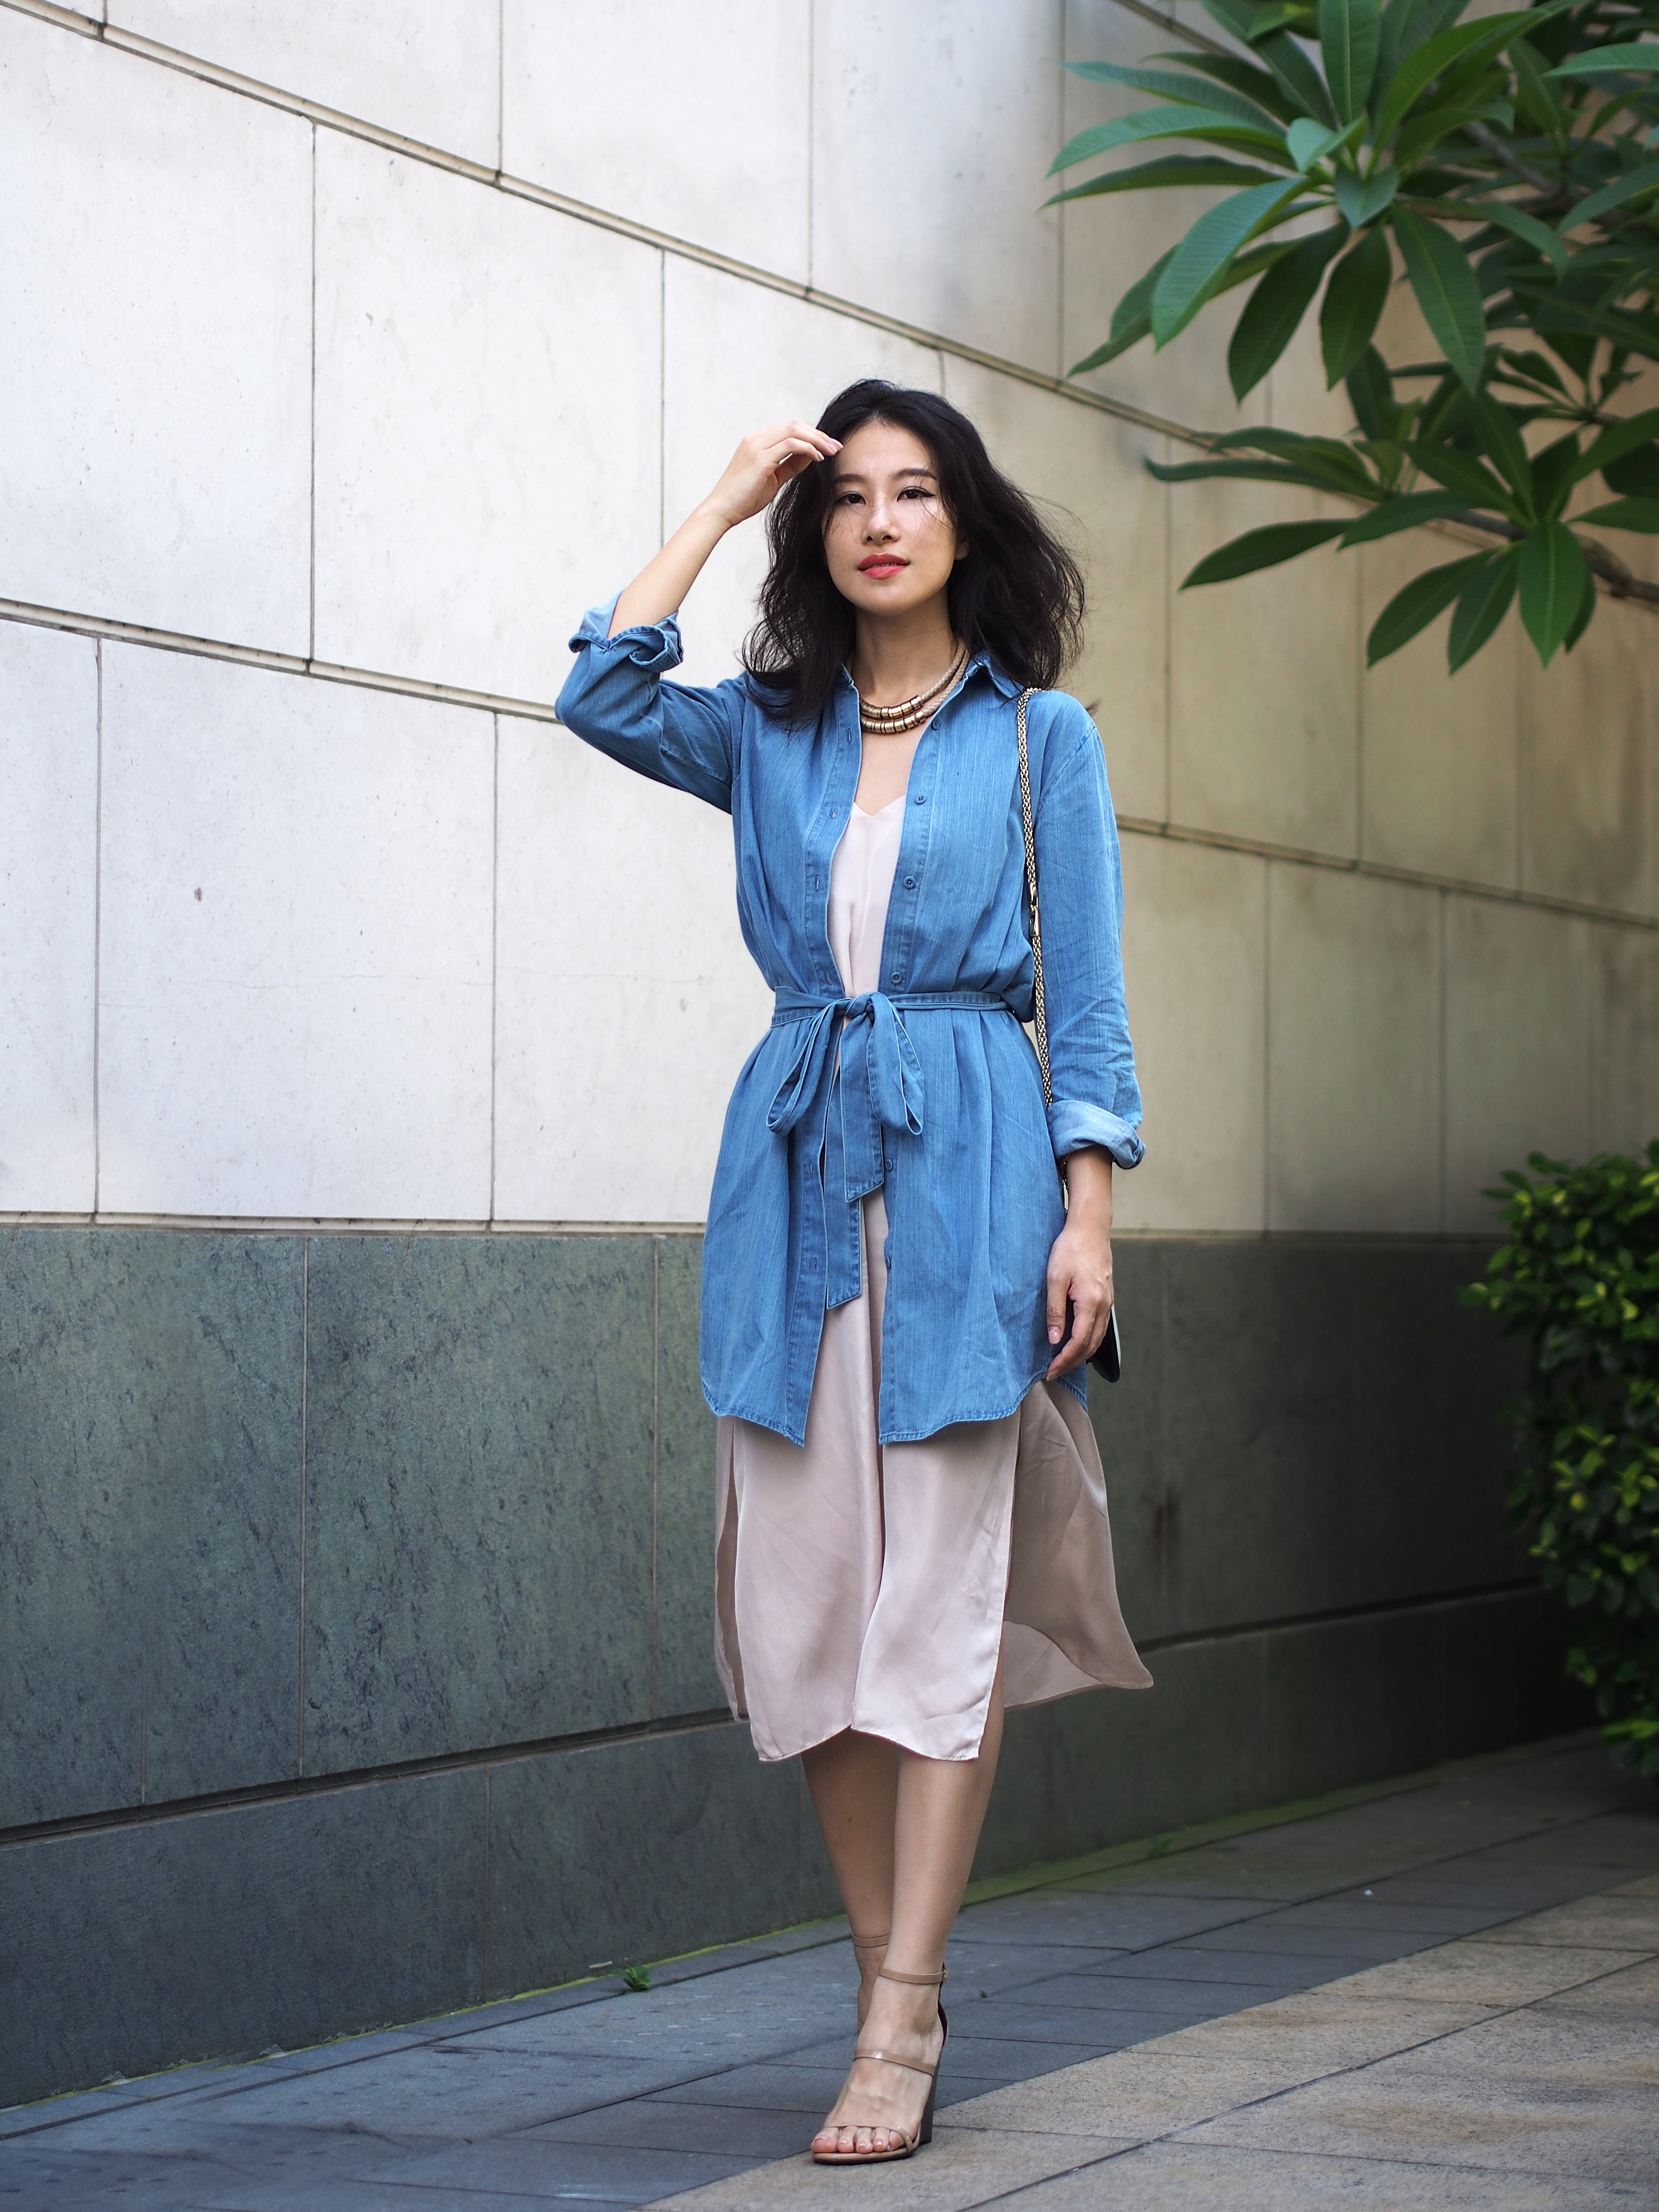 Layering shirts over dresses